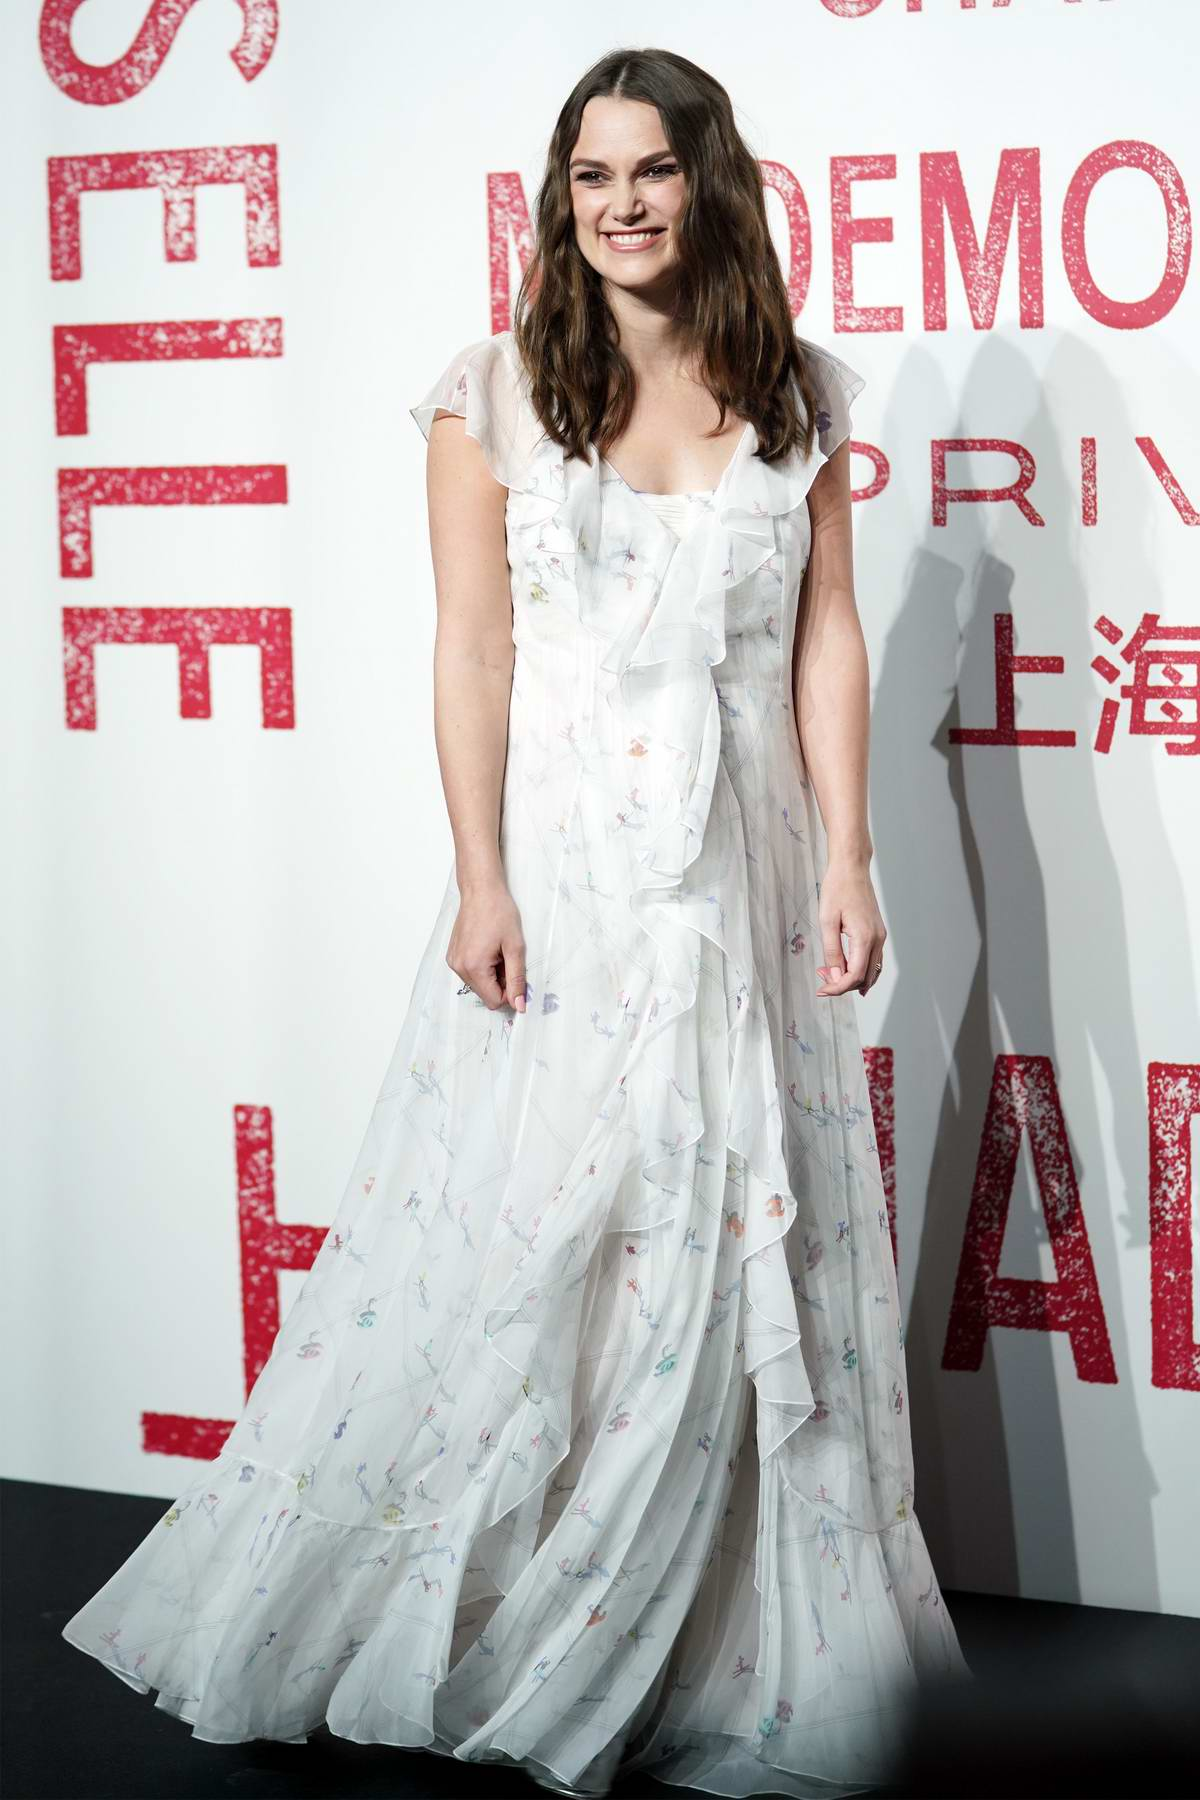 Keira Knightley attends the Chanel Mademoiselle Prive exhibition in Shanghai, China